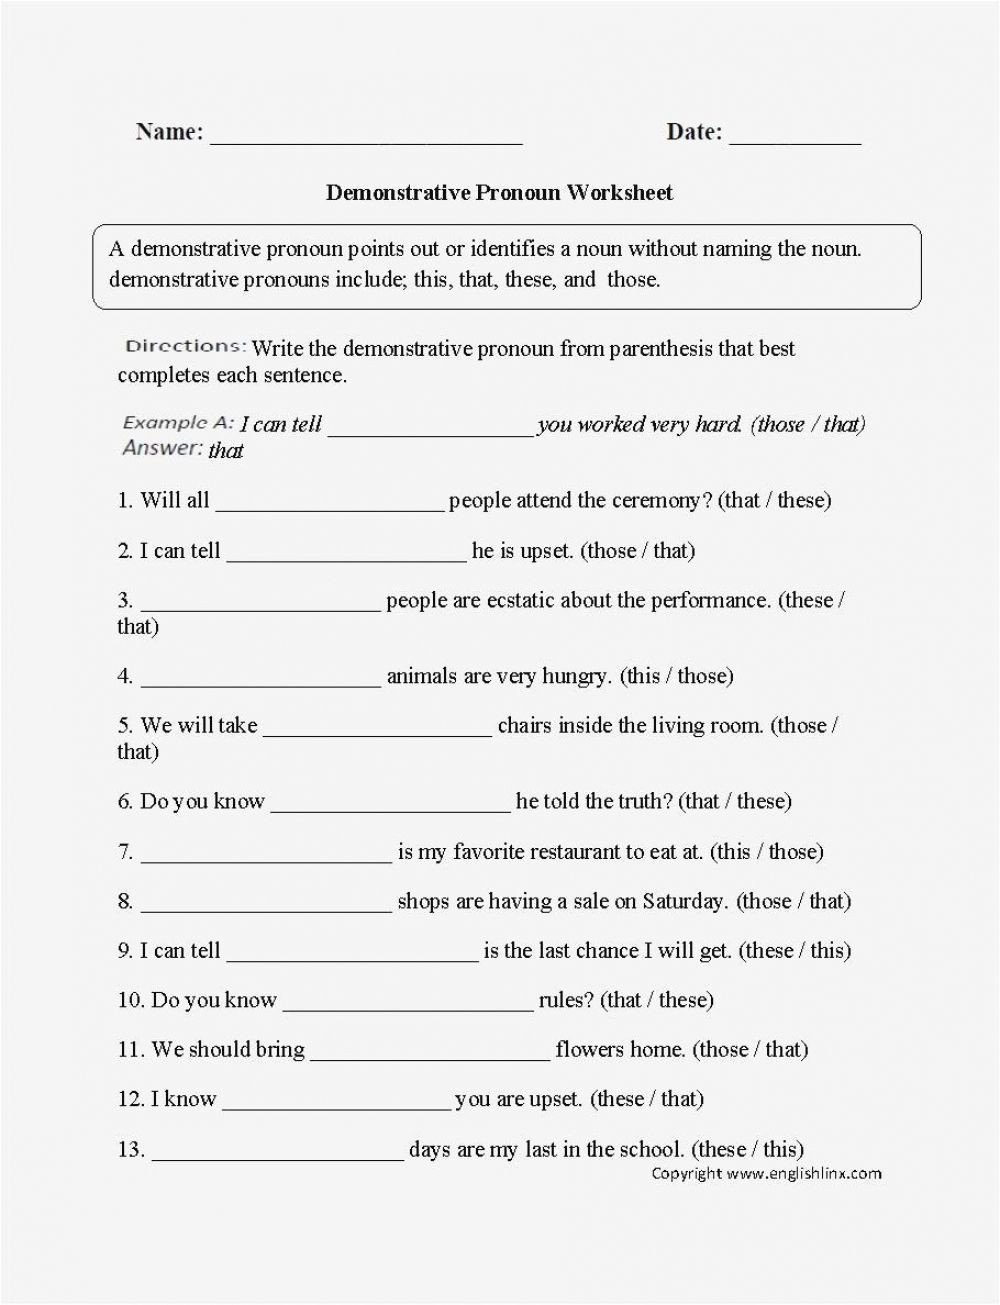 6th Grade Pronoun Worksheets Pin On School Learning Subjects